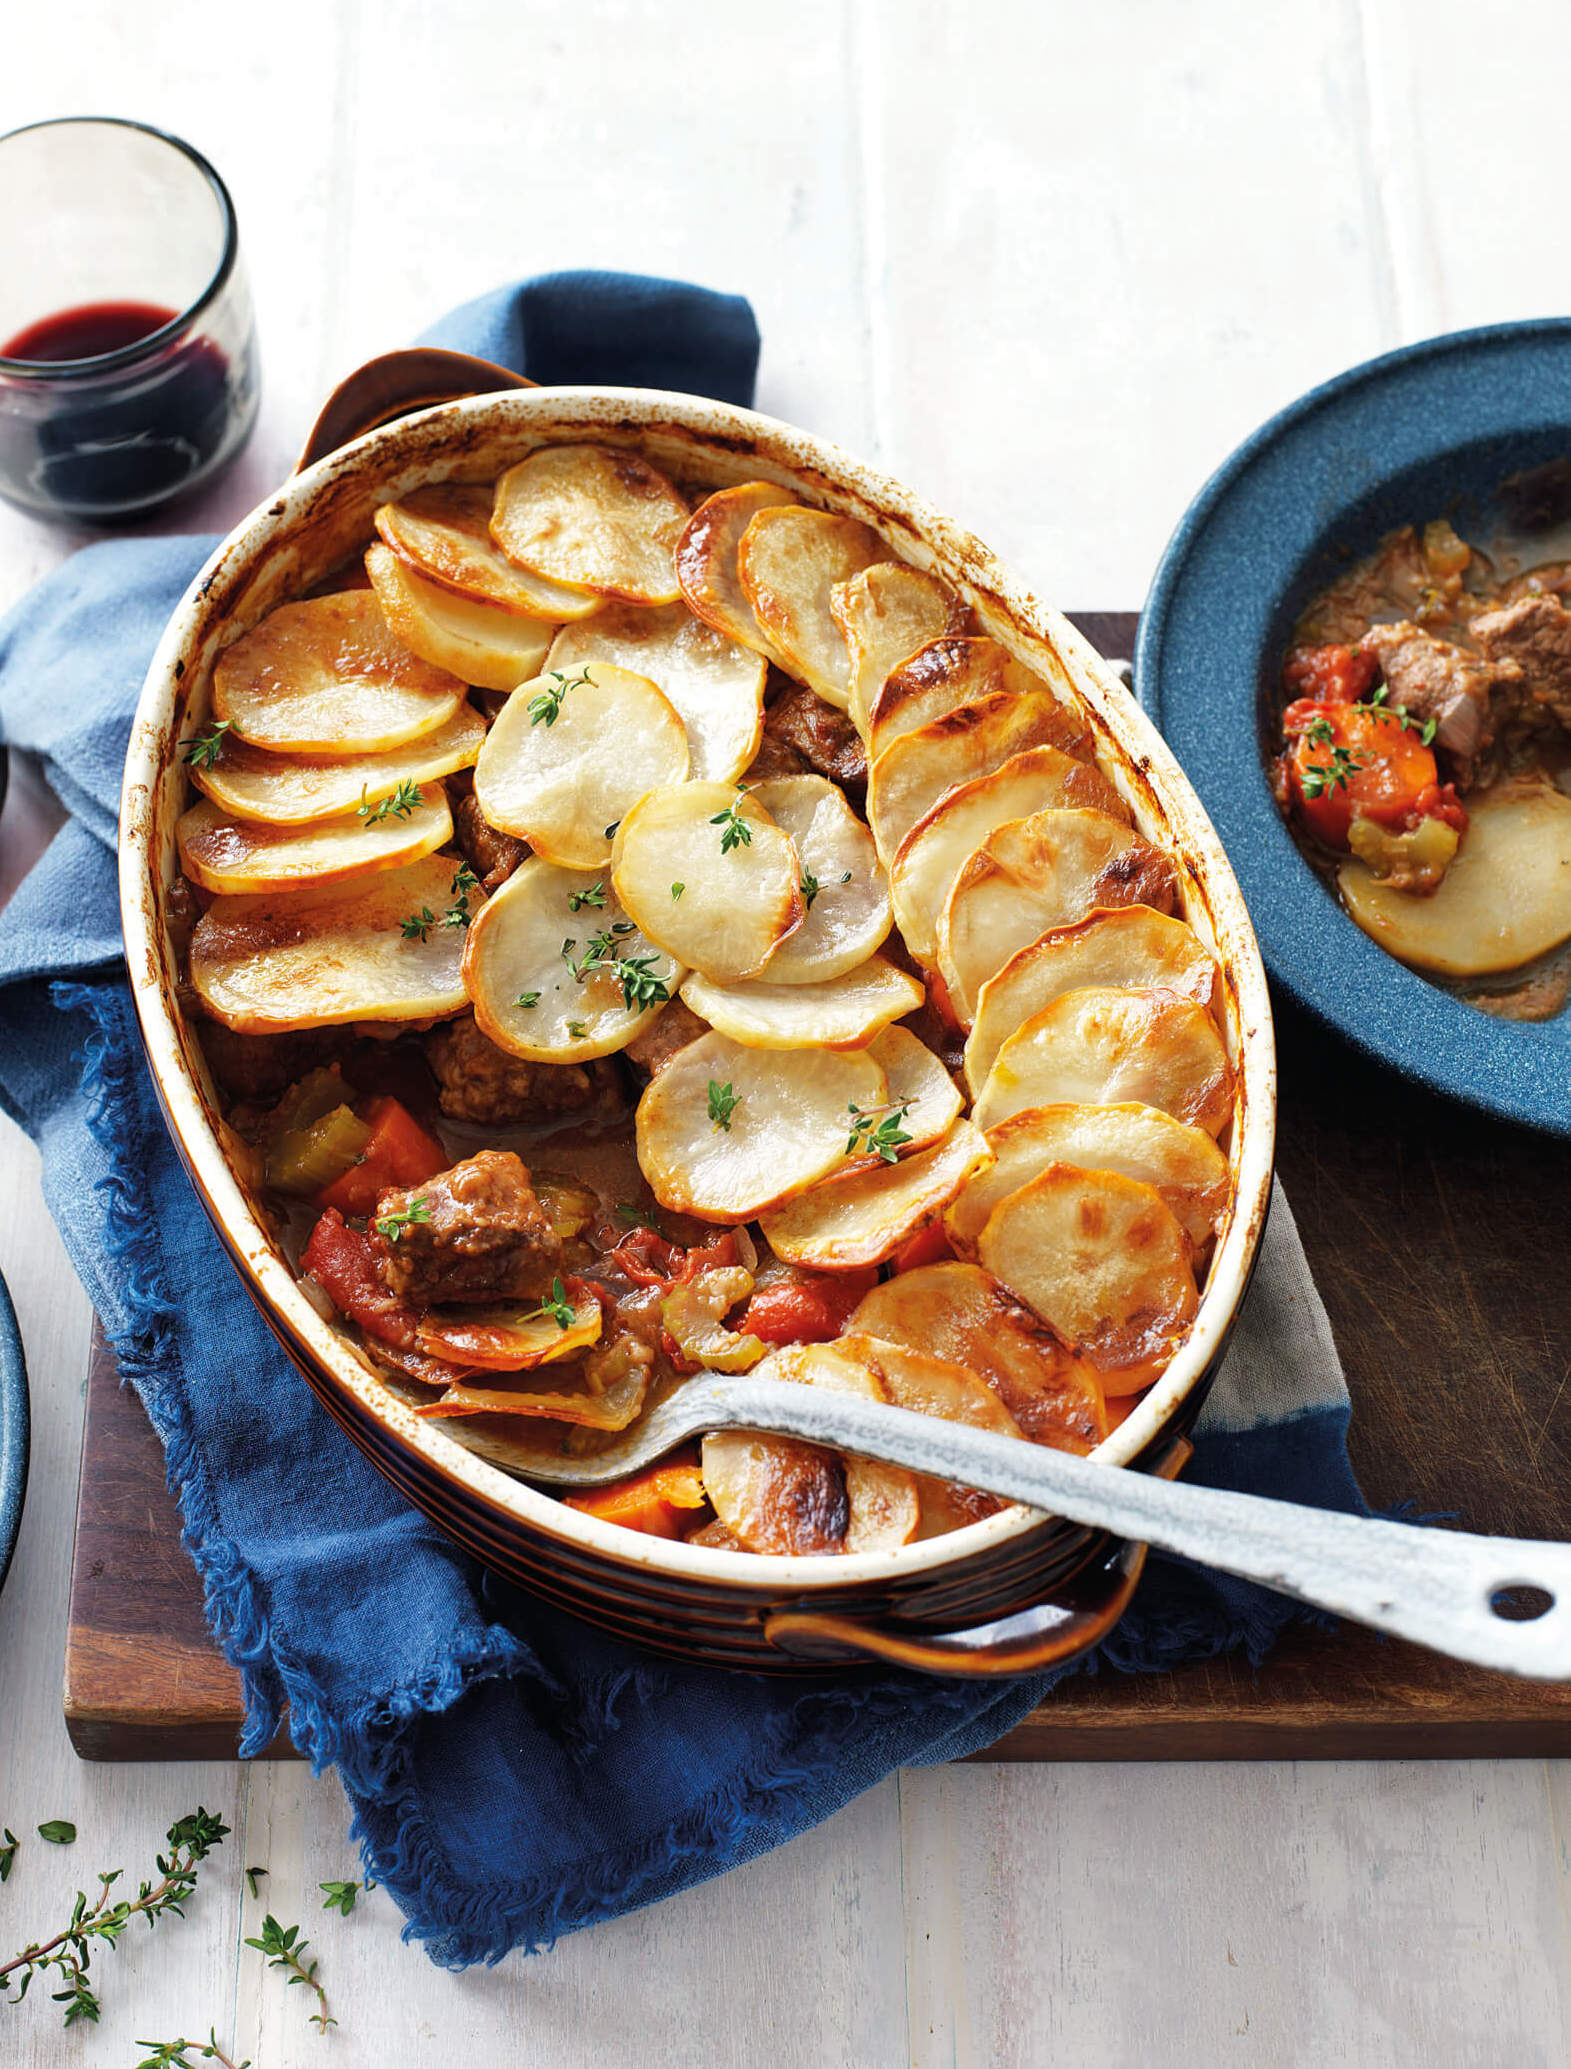 Slow cooked vegetable and lamb casserole recipe